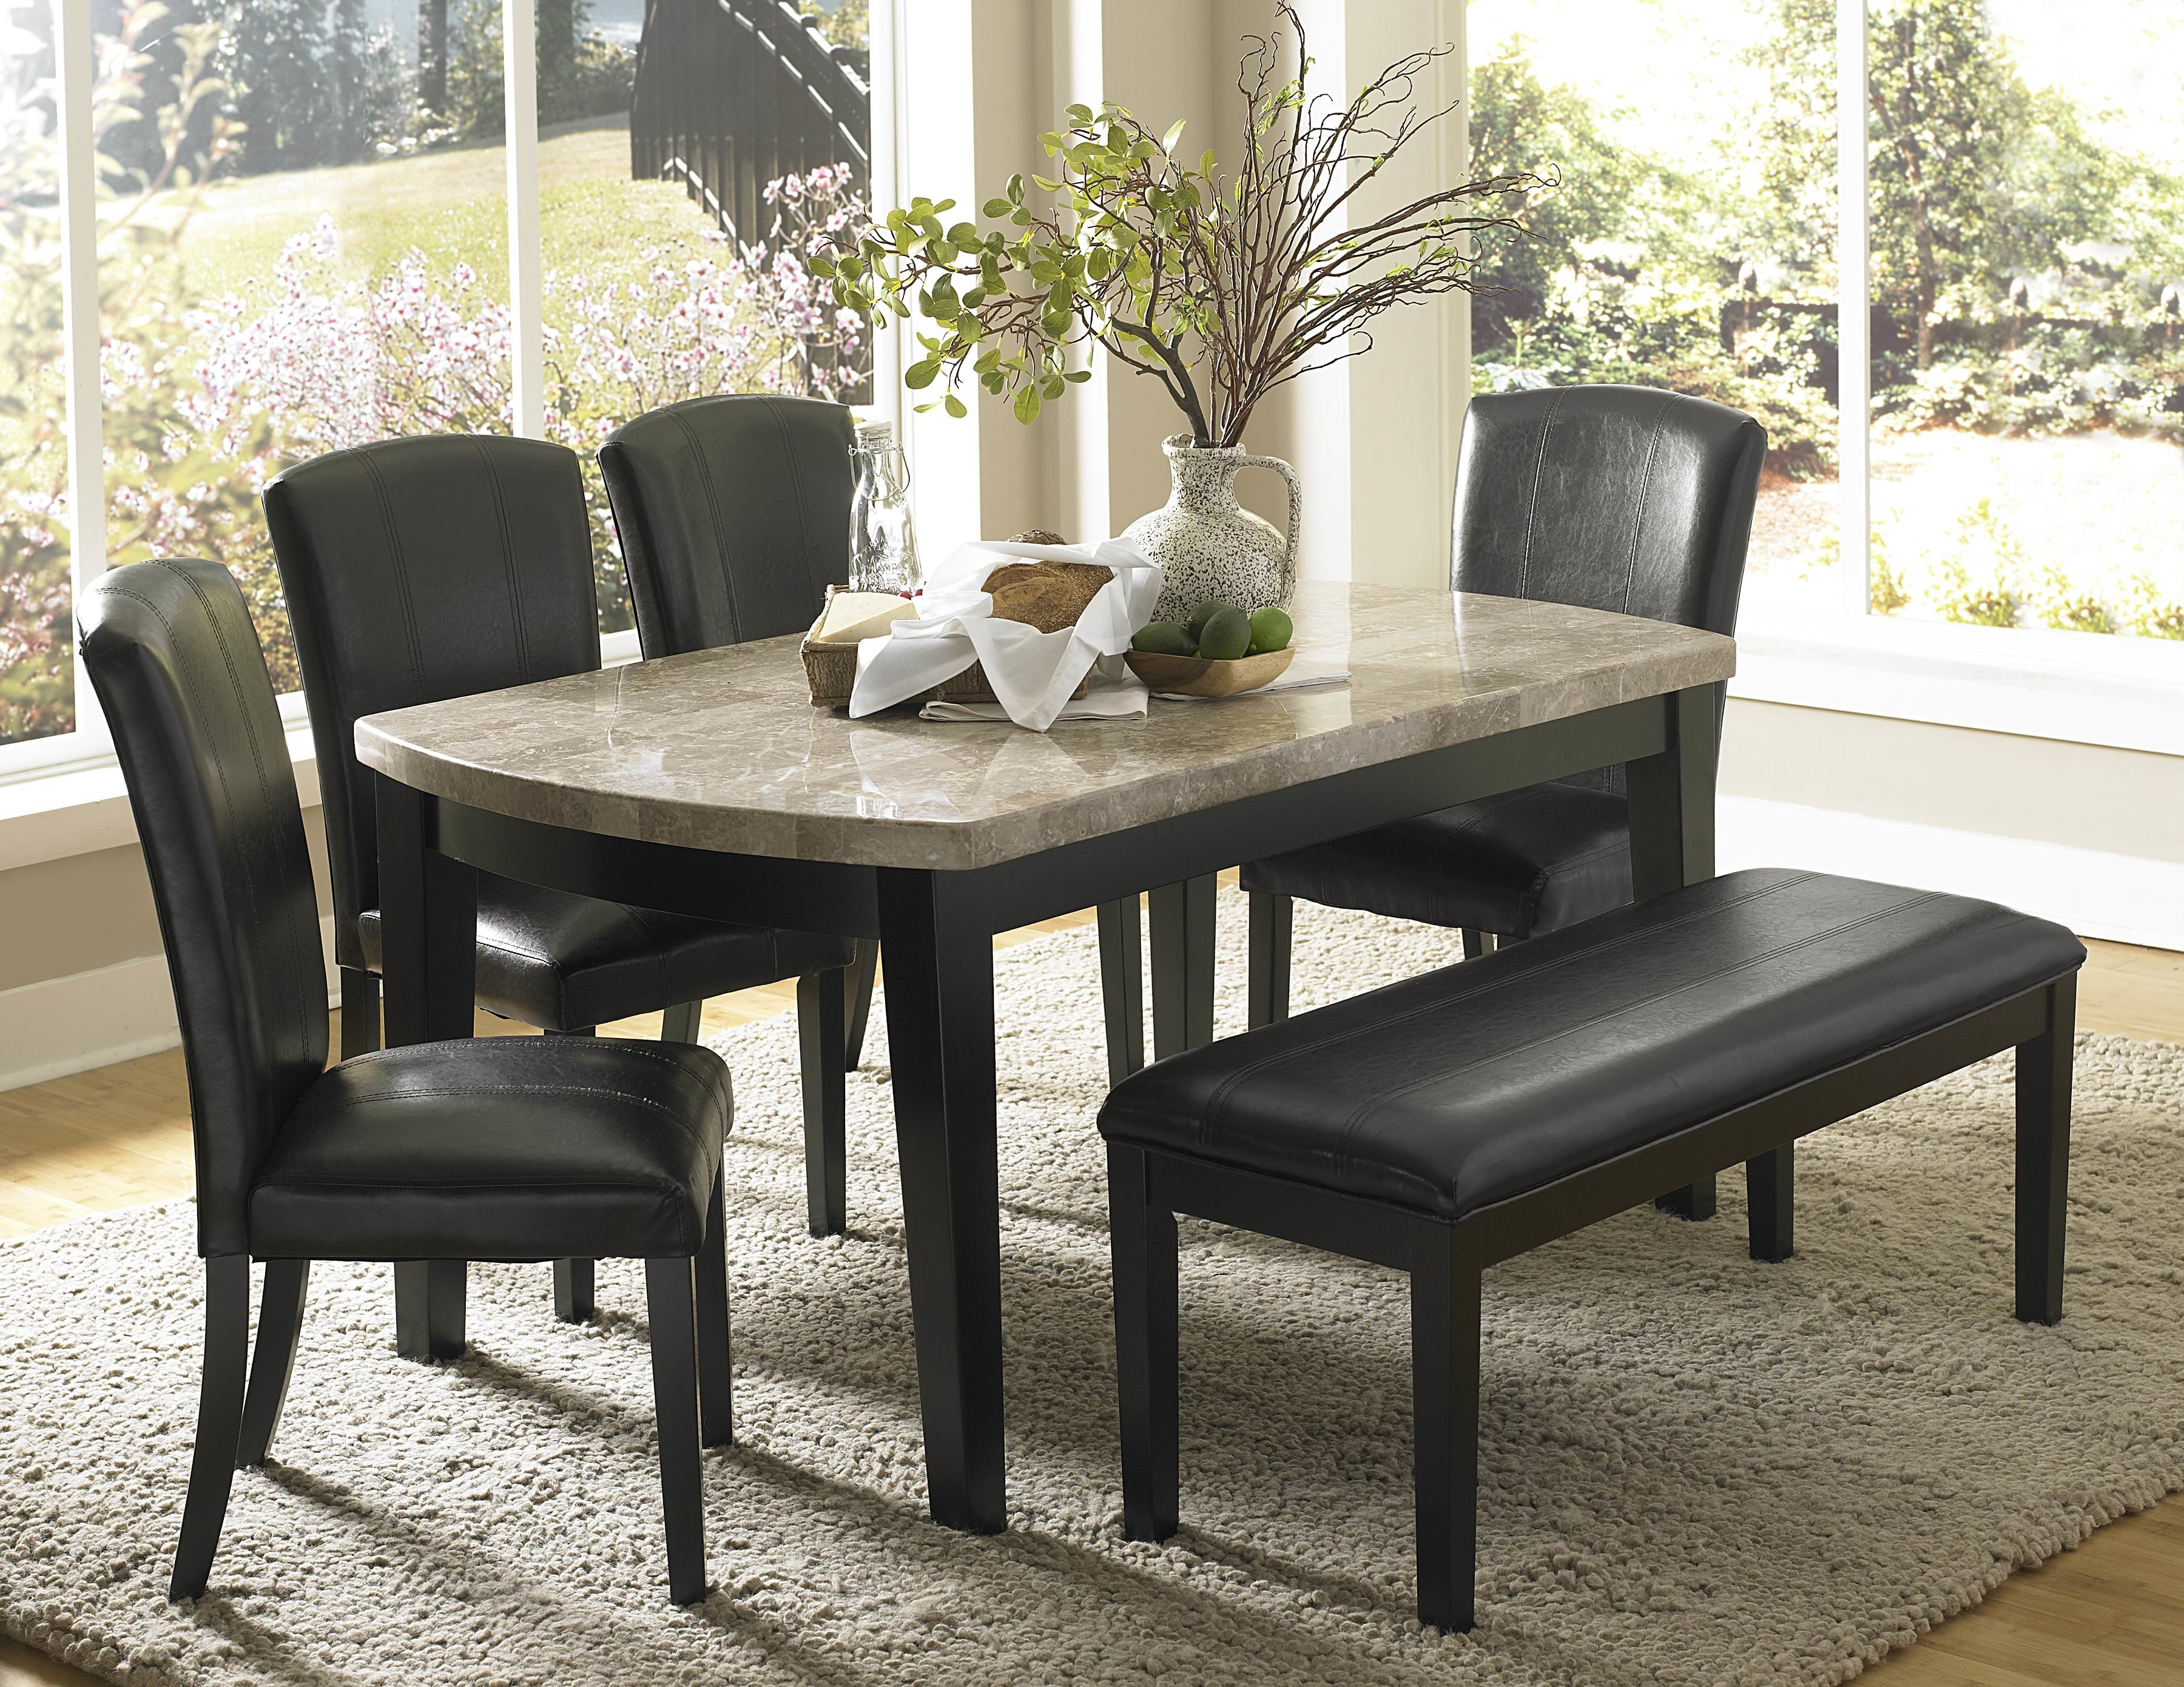 Queener 5 Piece Dining Sets For Latest Nuccio 6 Piece Dining Set (View 7 of 20)